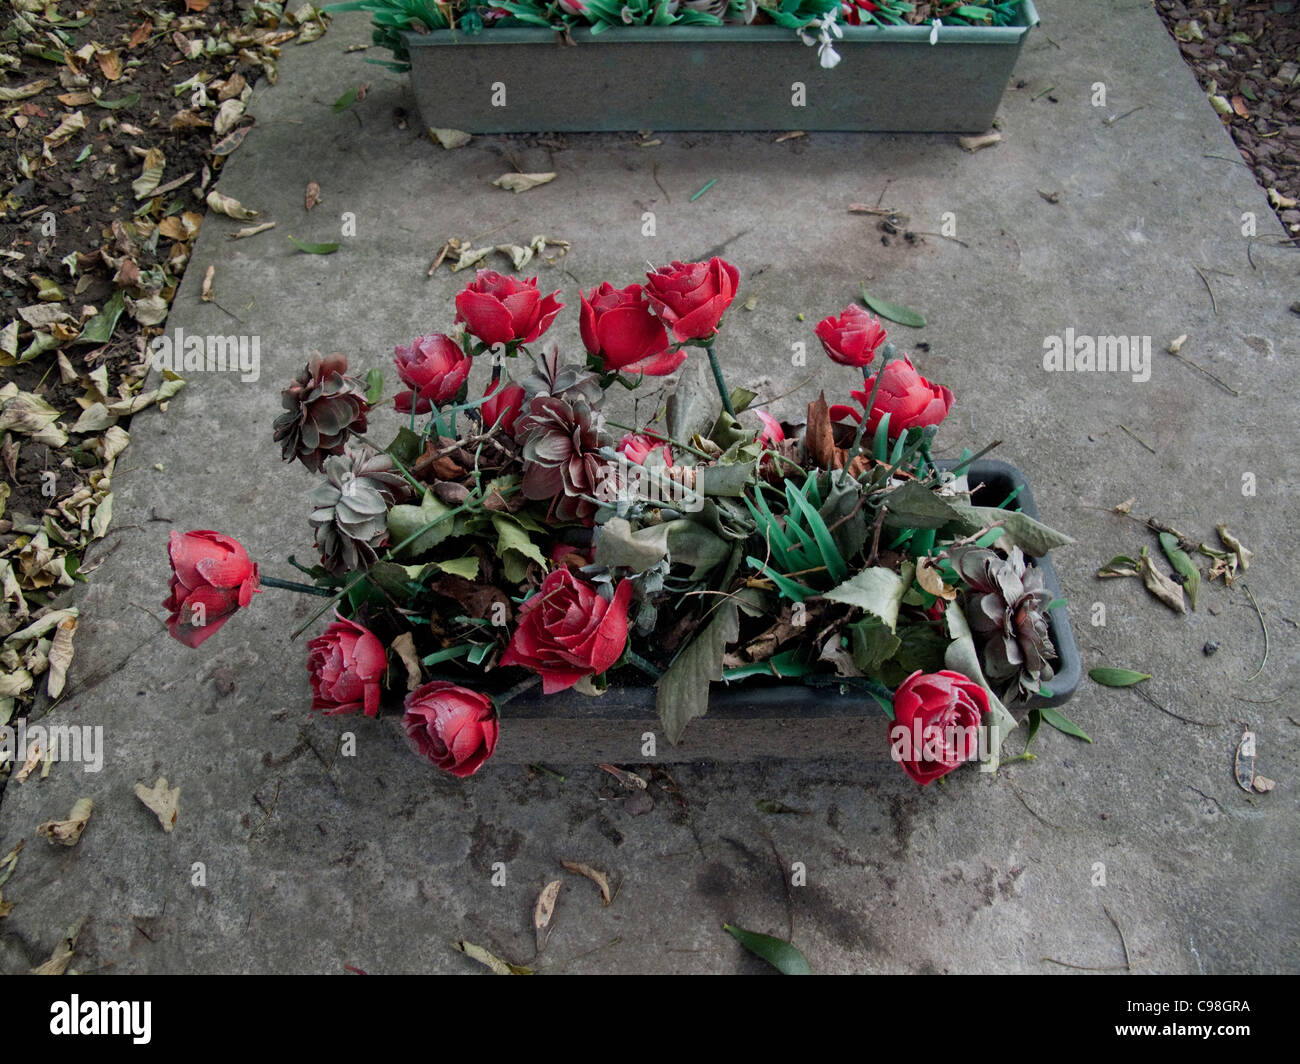 Faded red plastic flowers on grave. - Stock Image